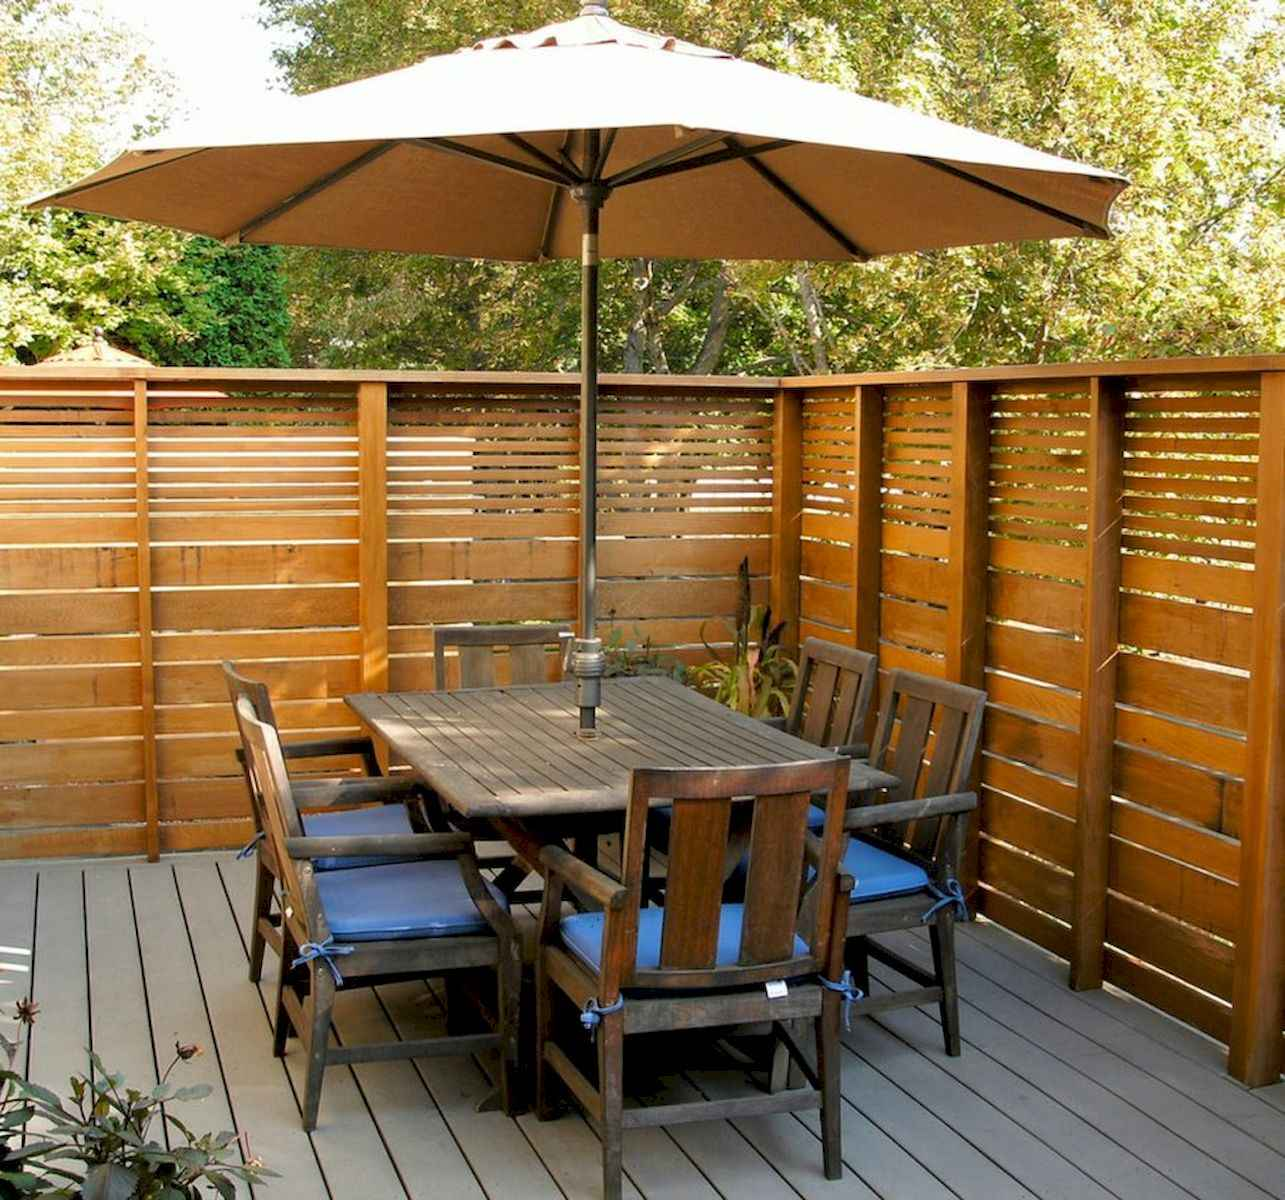 80 DIY Summery Backyard Projects Ideas Make Your Summer Awesome (60)